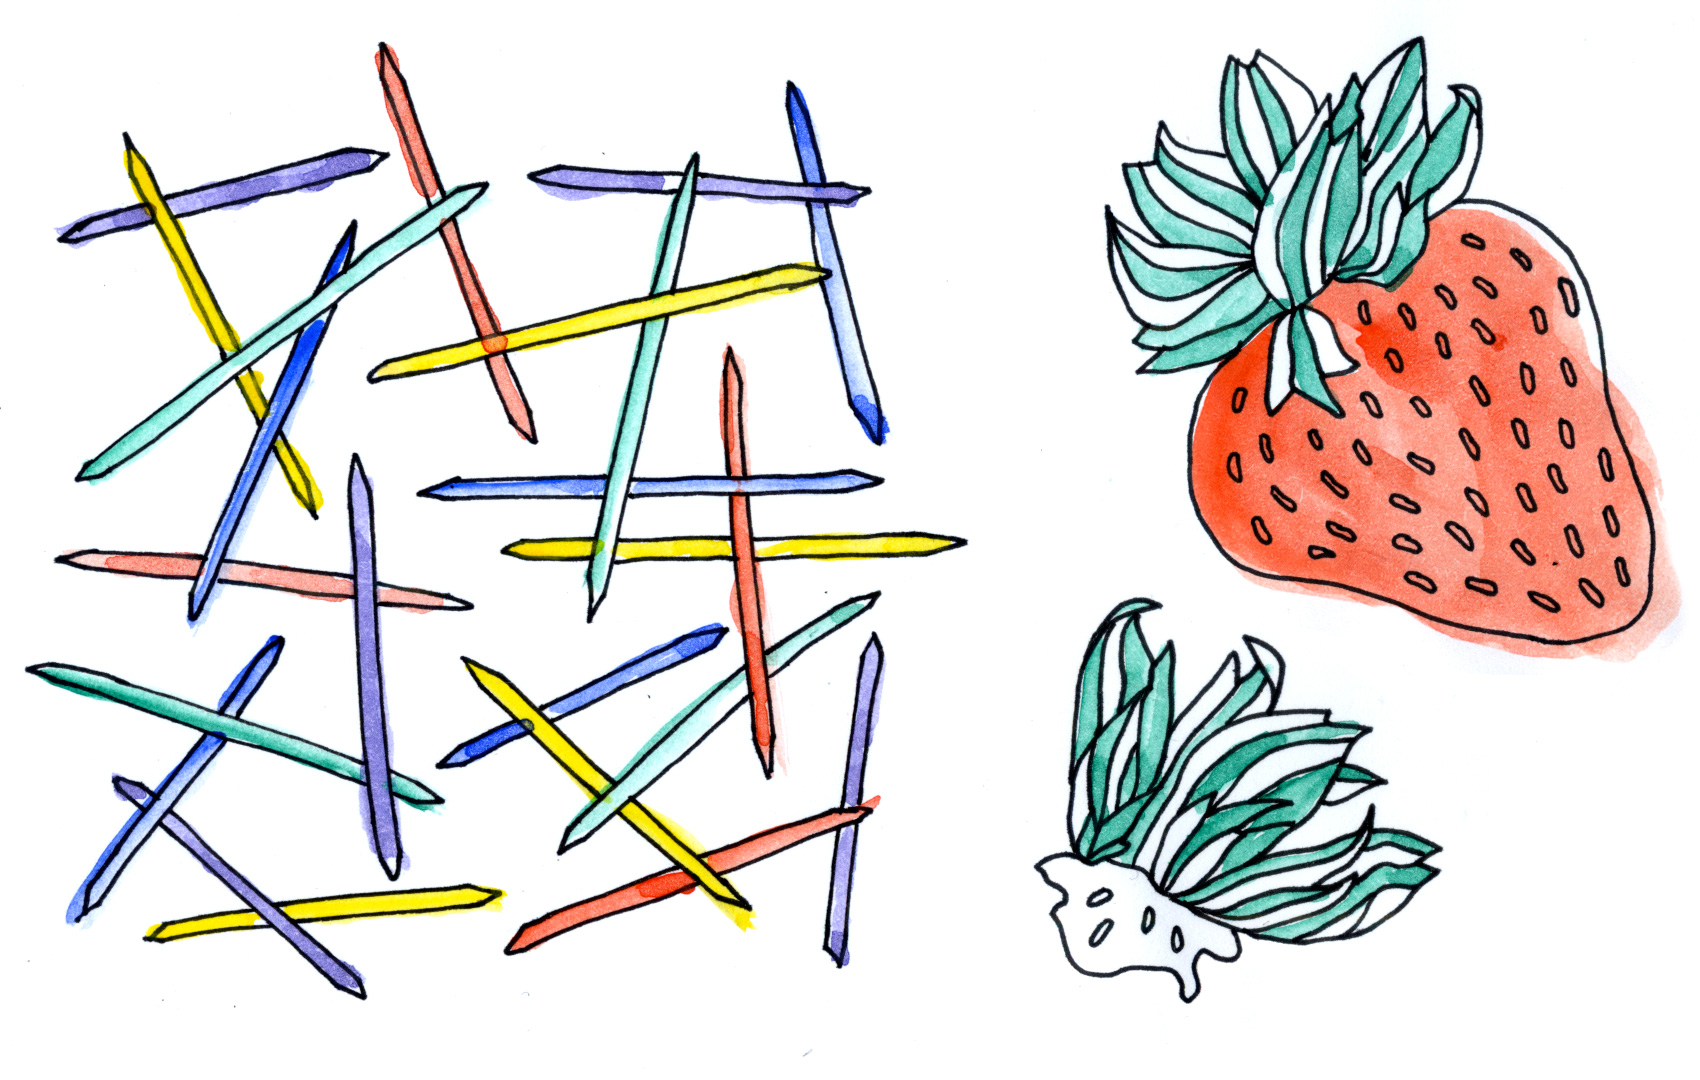 Black pen and watercolor sketch of toothpicks and strawberries.